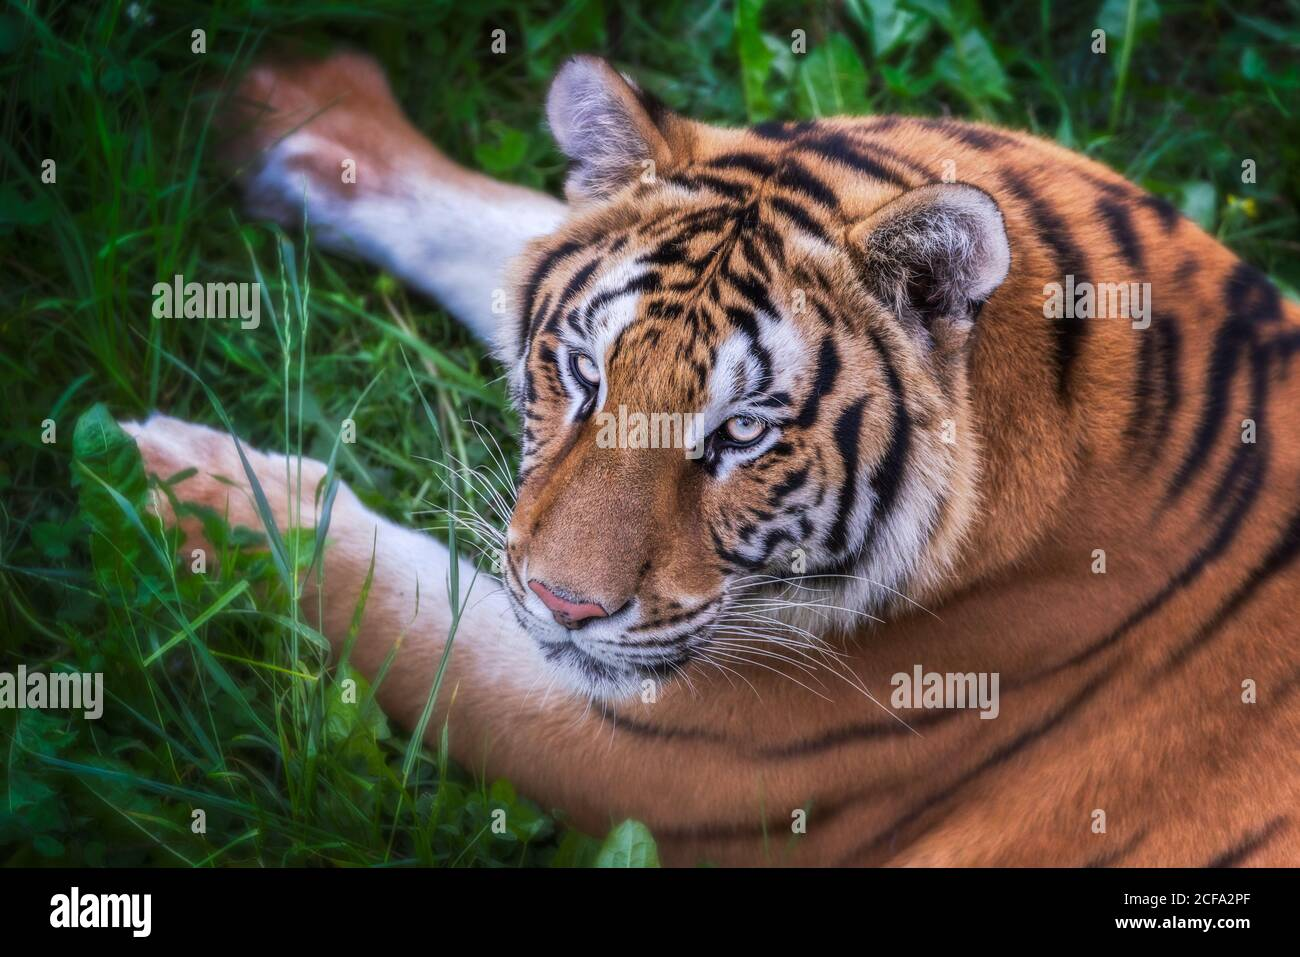 From above huge tiger lying on grass in colorful jungle near trees with small leaves in sunlight looking at camera Stock Photo